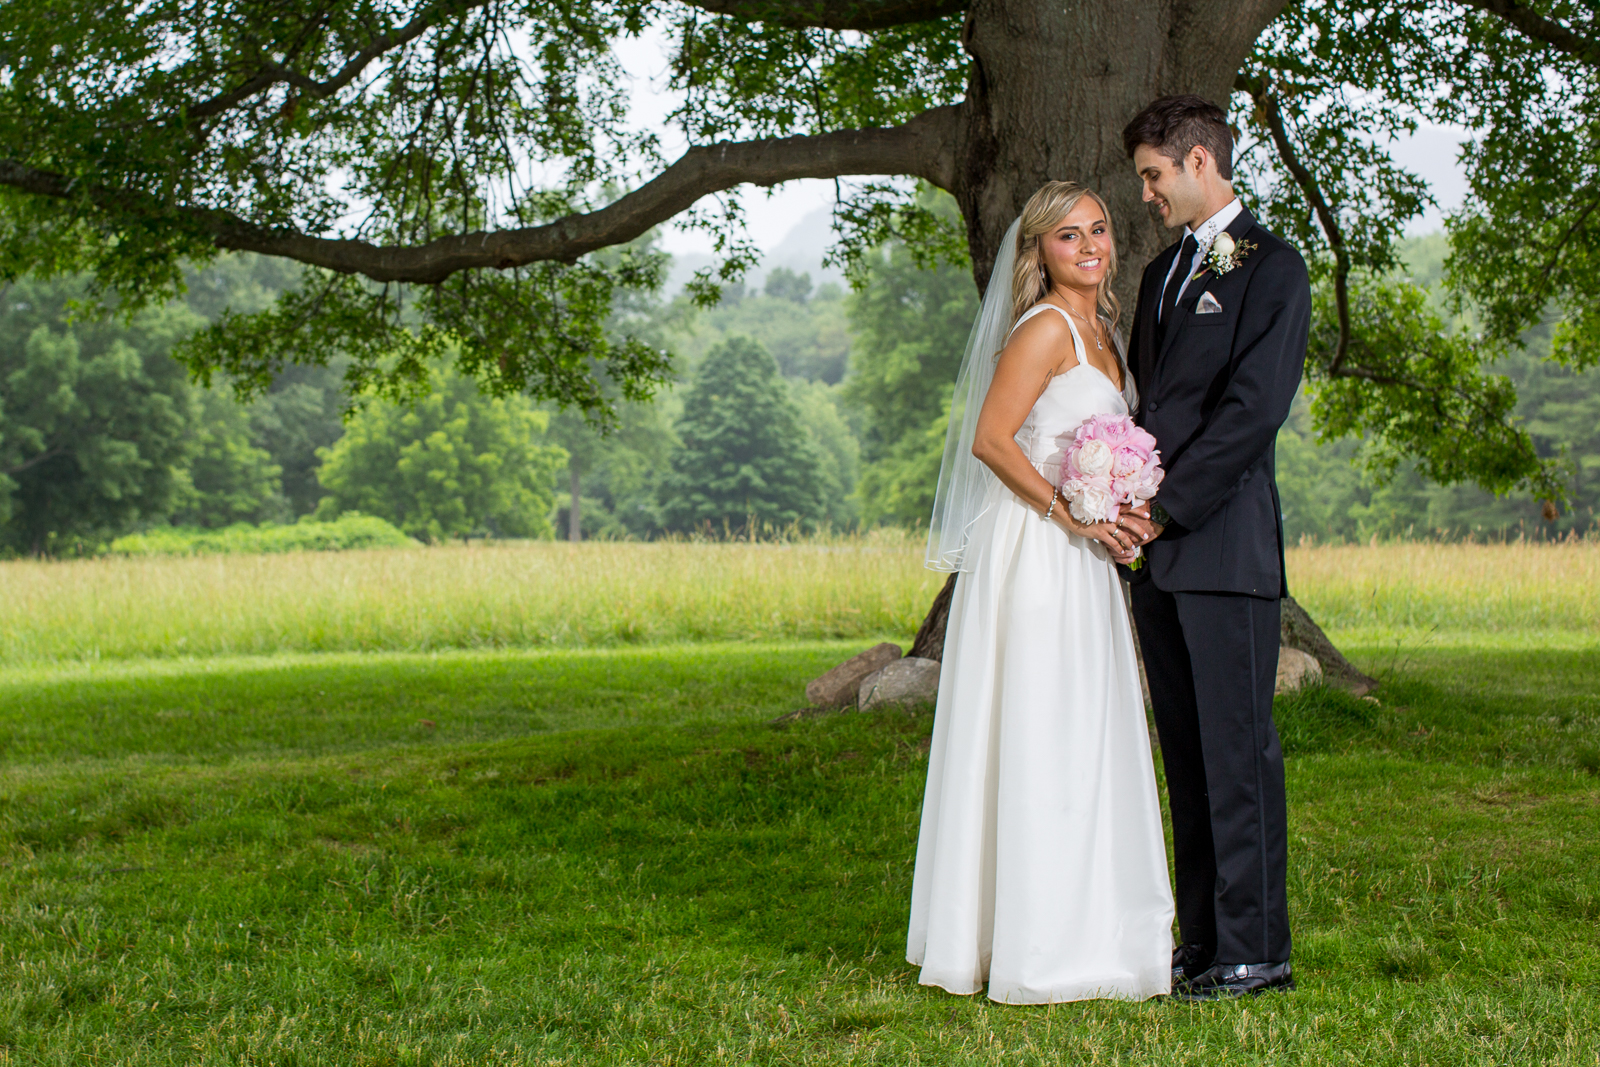 Four_Wings_Photography_Wedding_Red_Barn_at_Hampshire_College-34.jpg